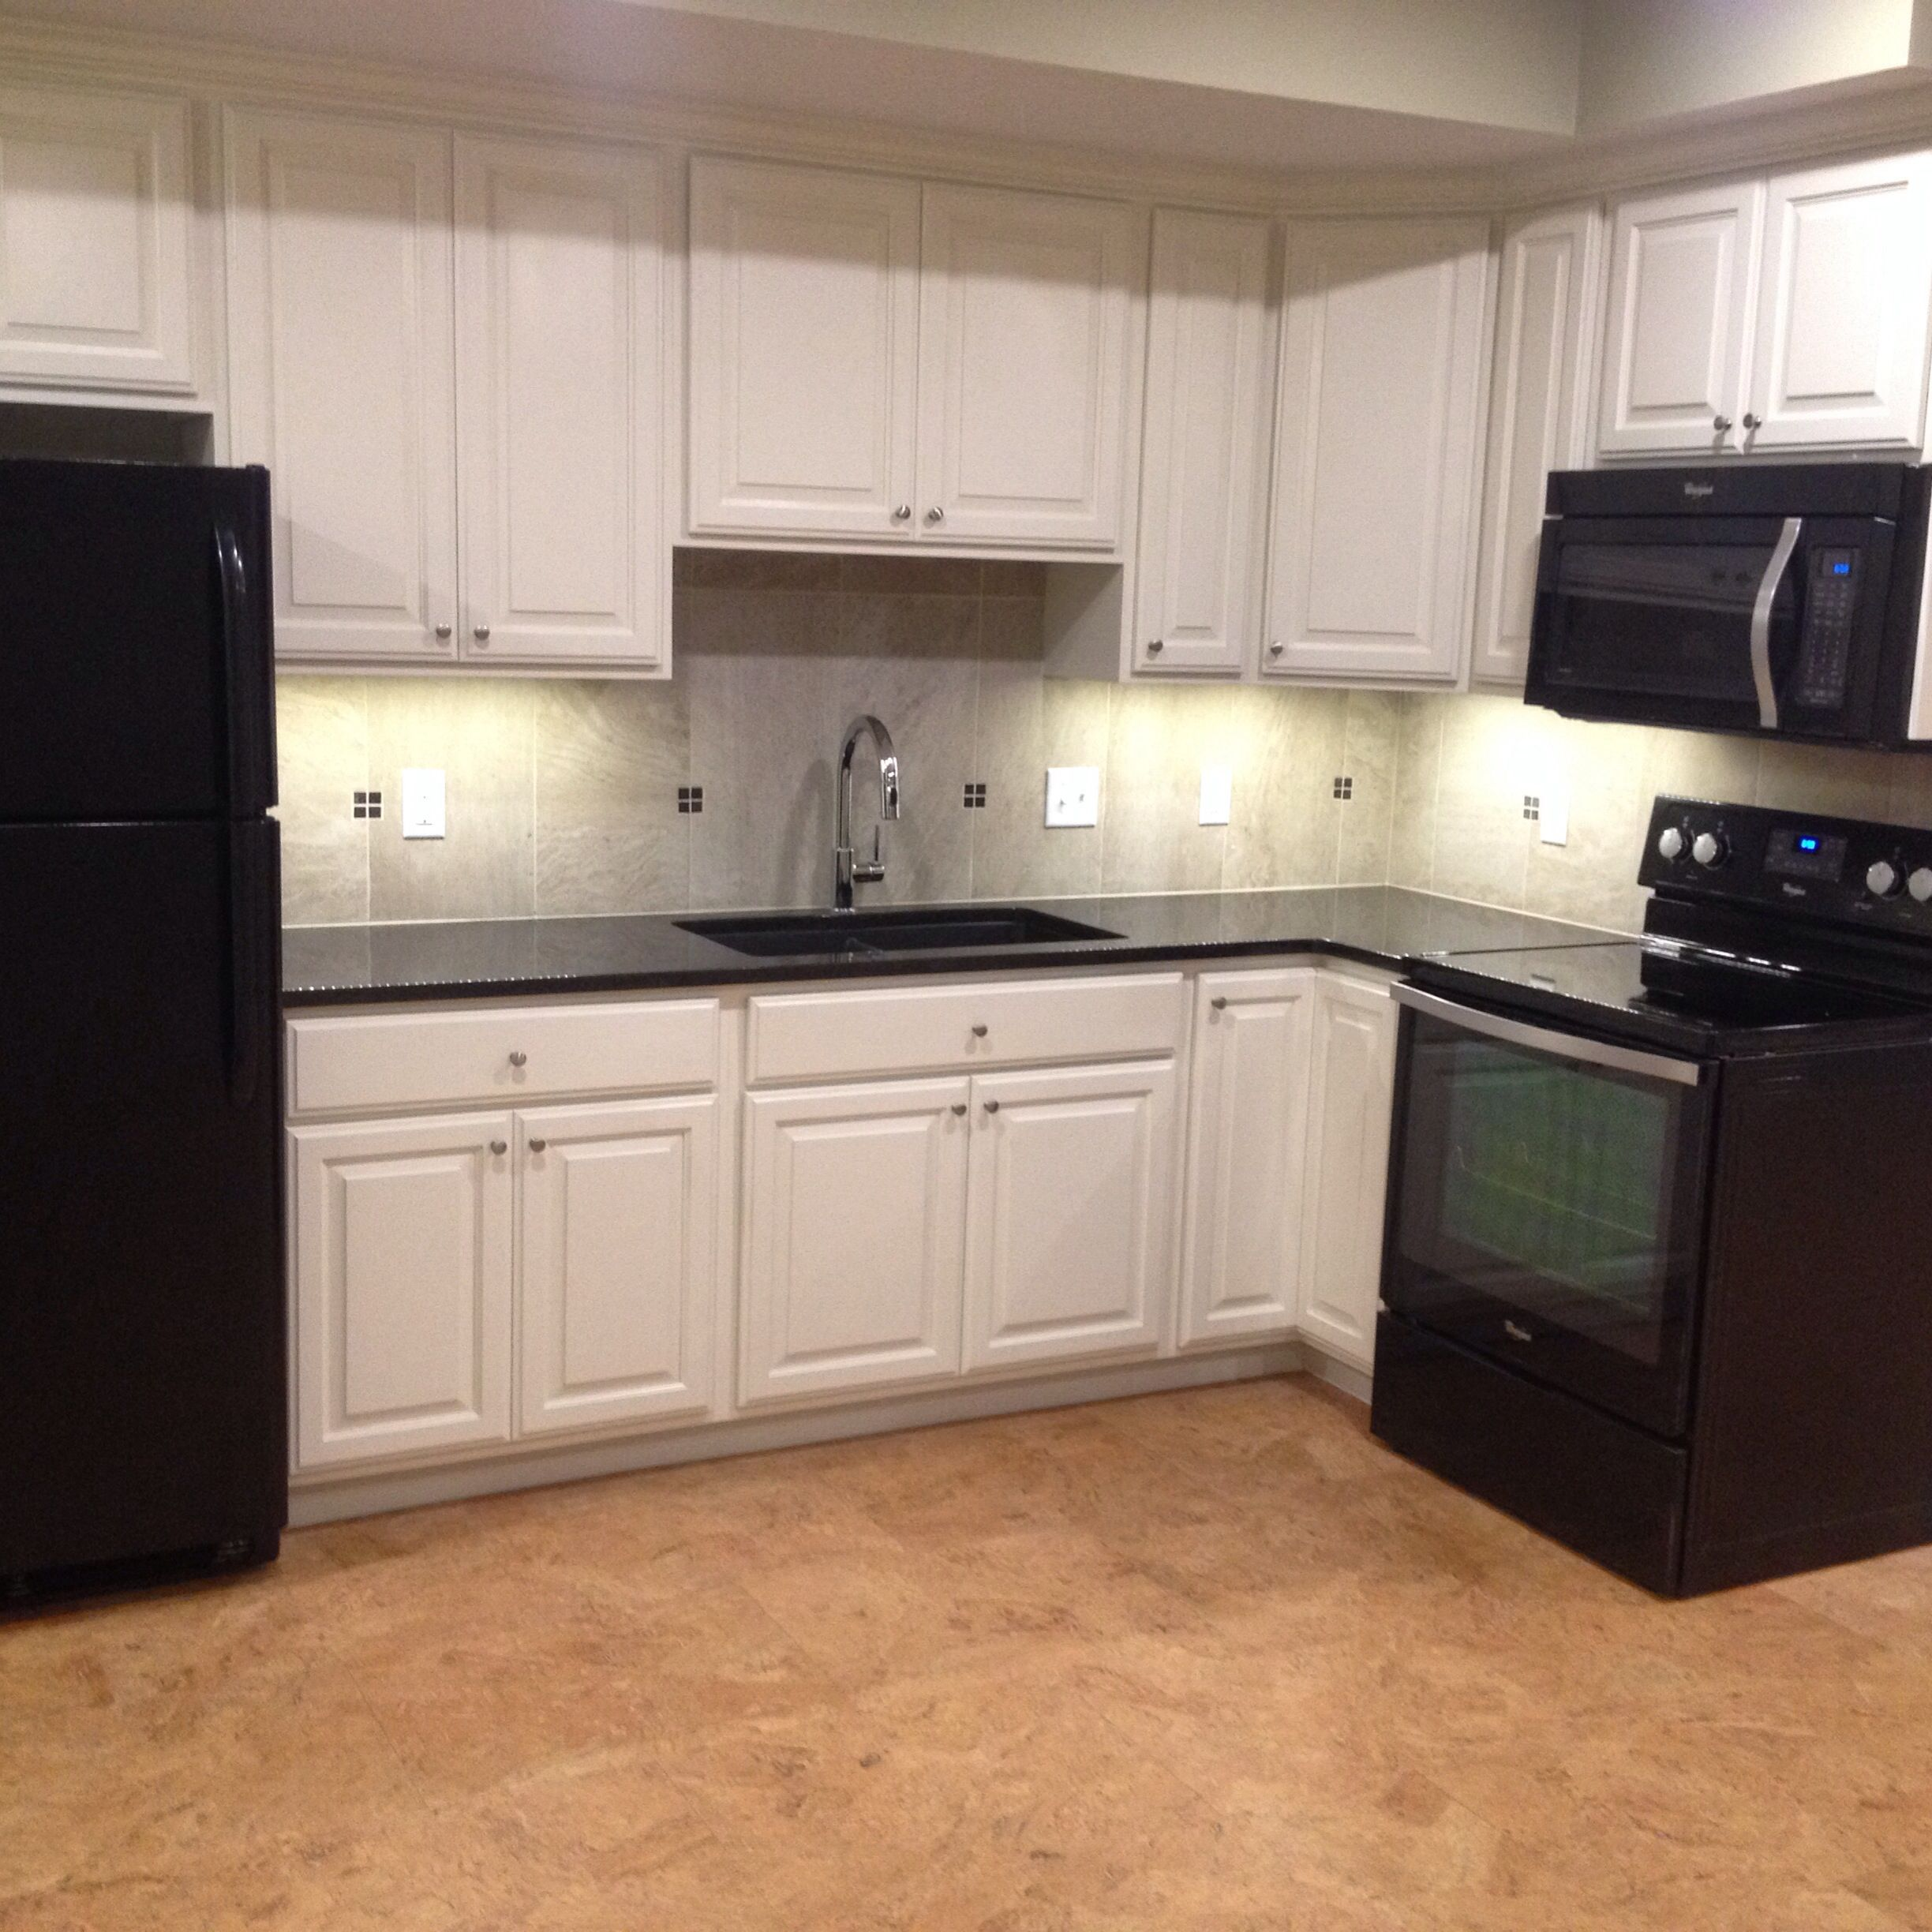 White Kitchen Cabinets, Black And Stainless Appliances